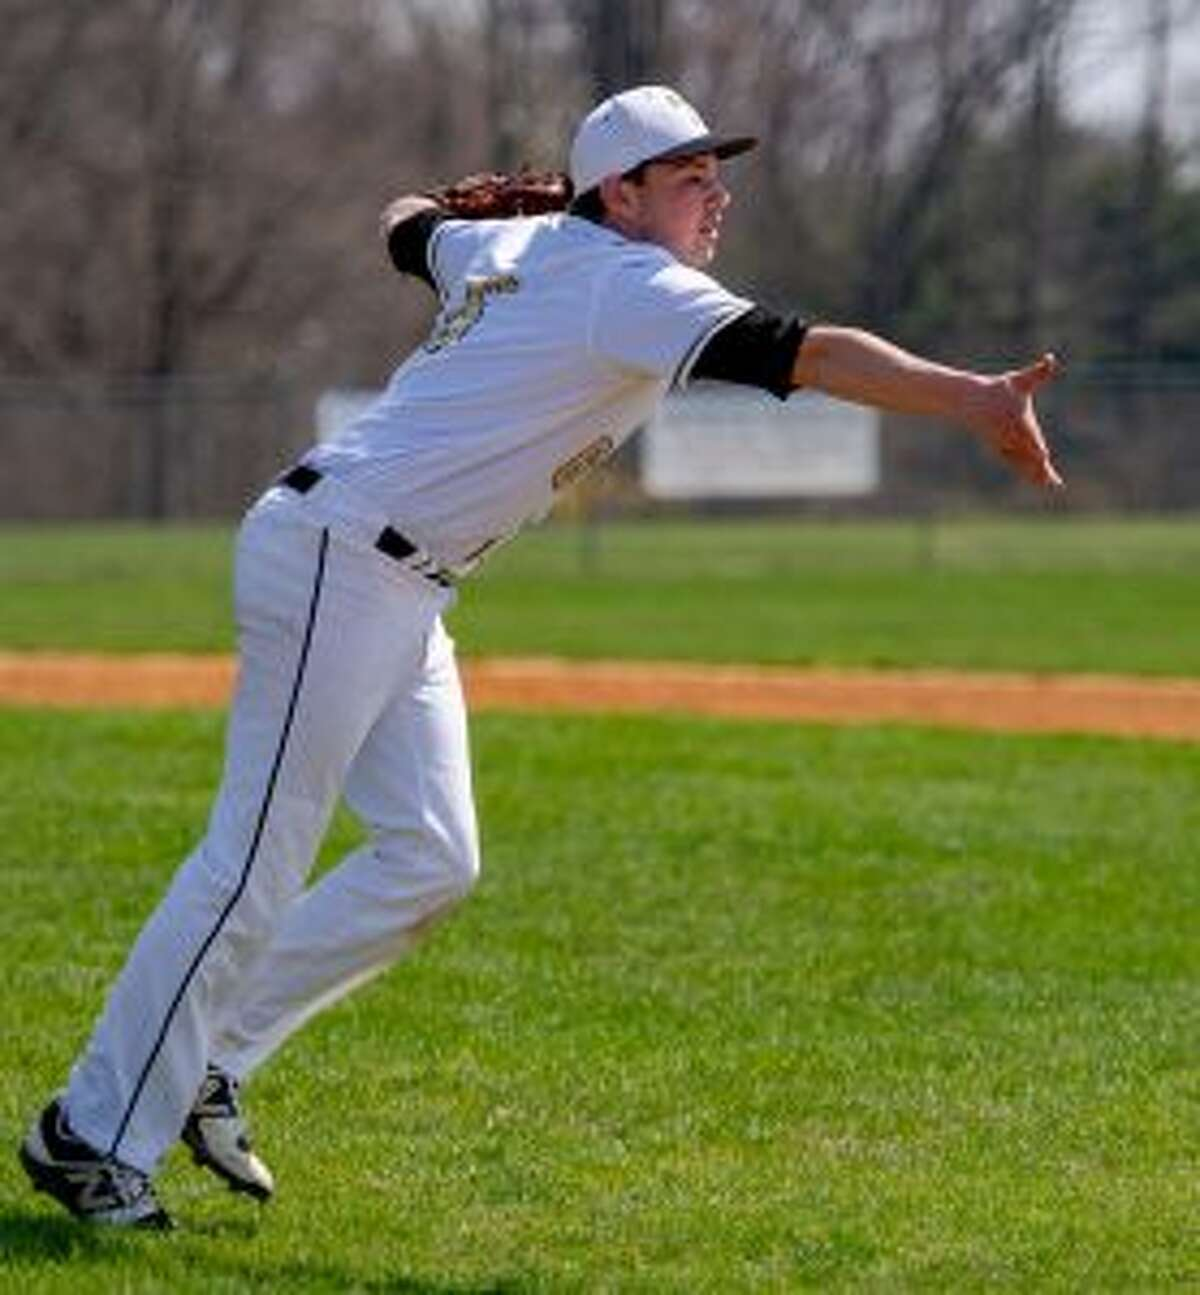 Evan Warner makes a toss to first base in the sixth inning. - David G. Whitham photo